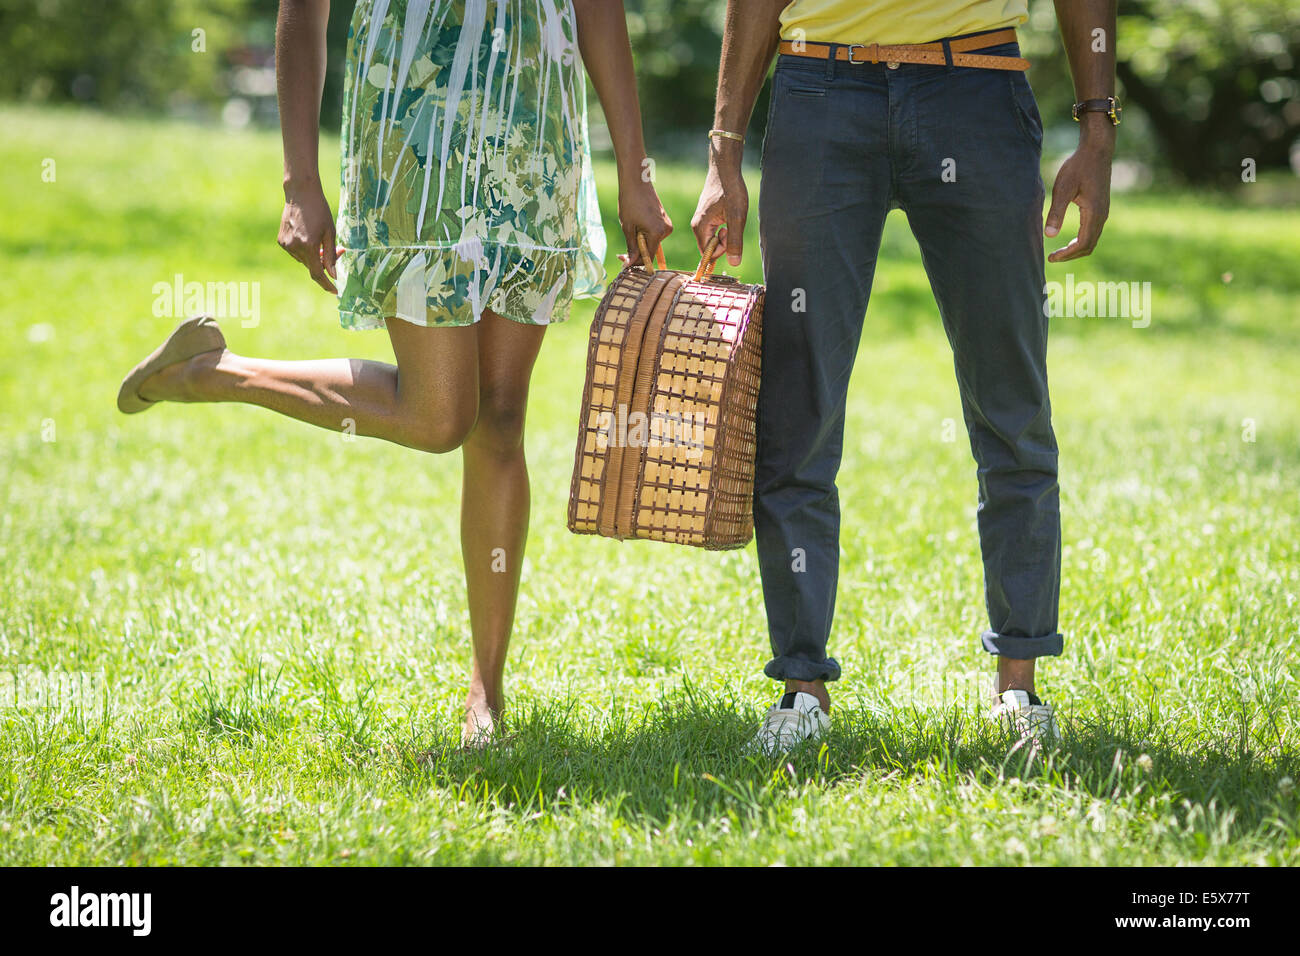 Cropped image of young couple with picnic basket in park - Stock Image